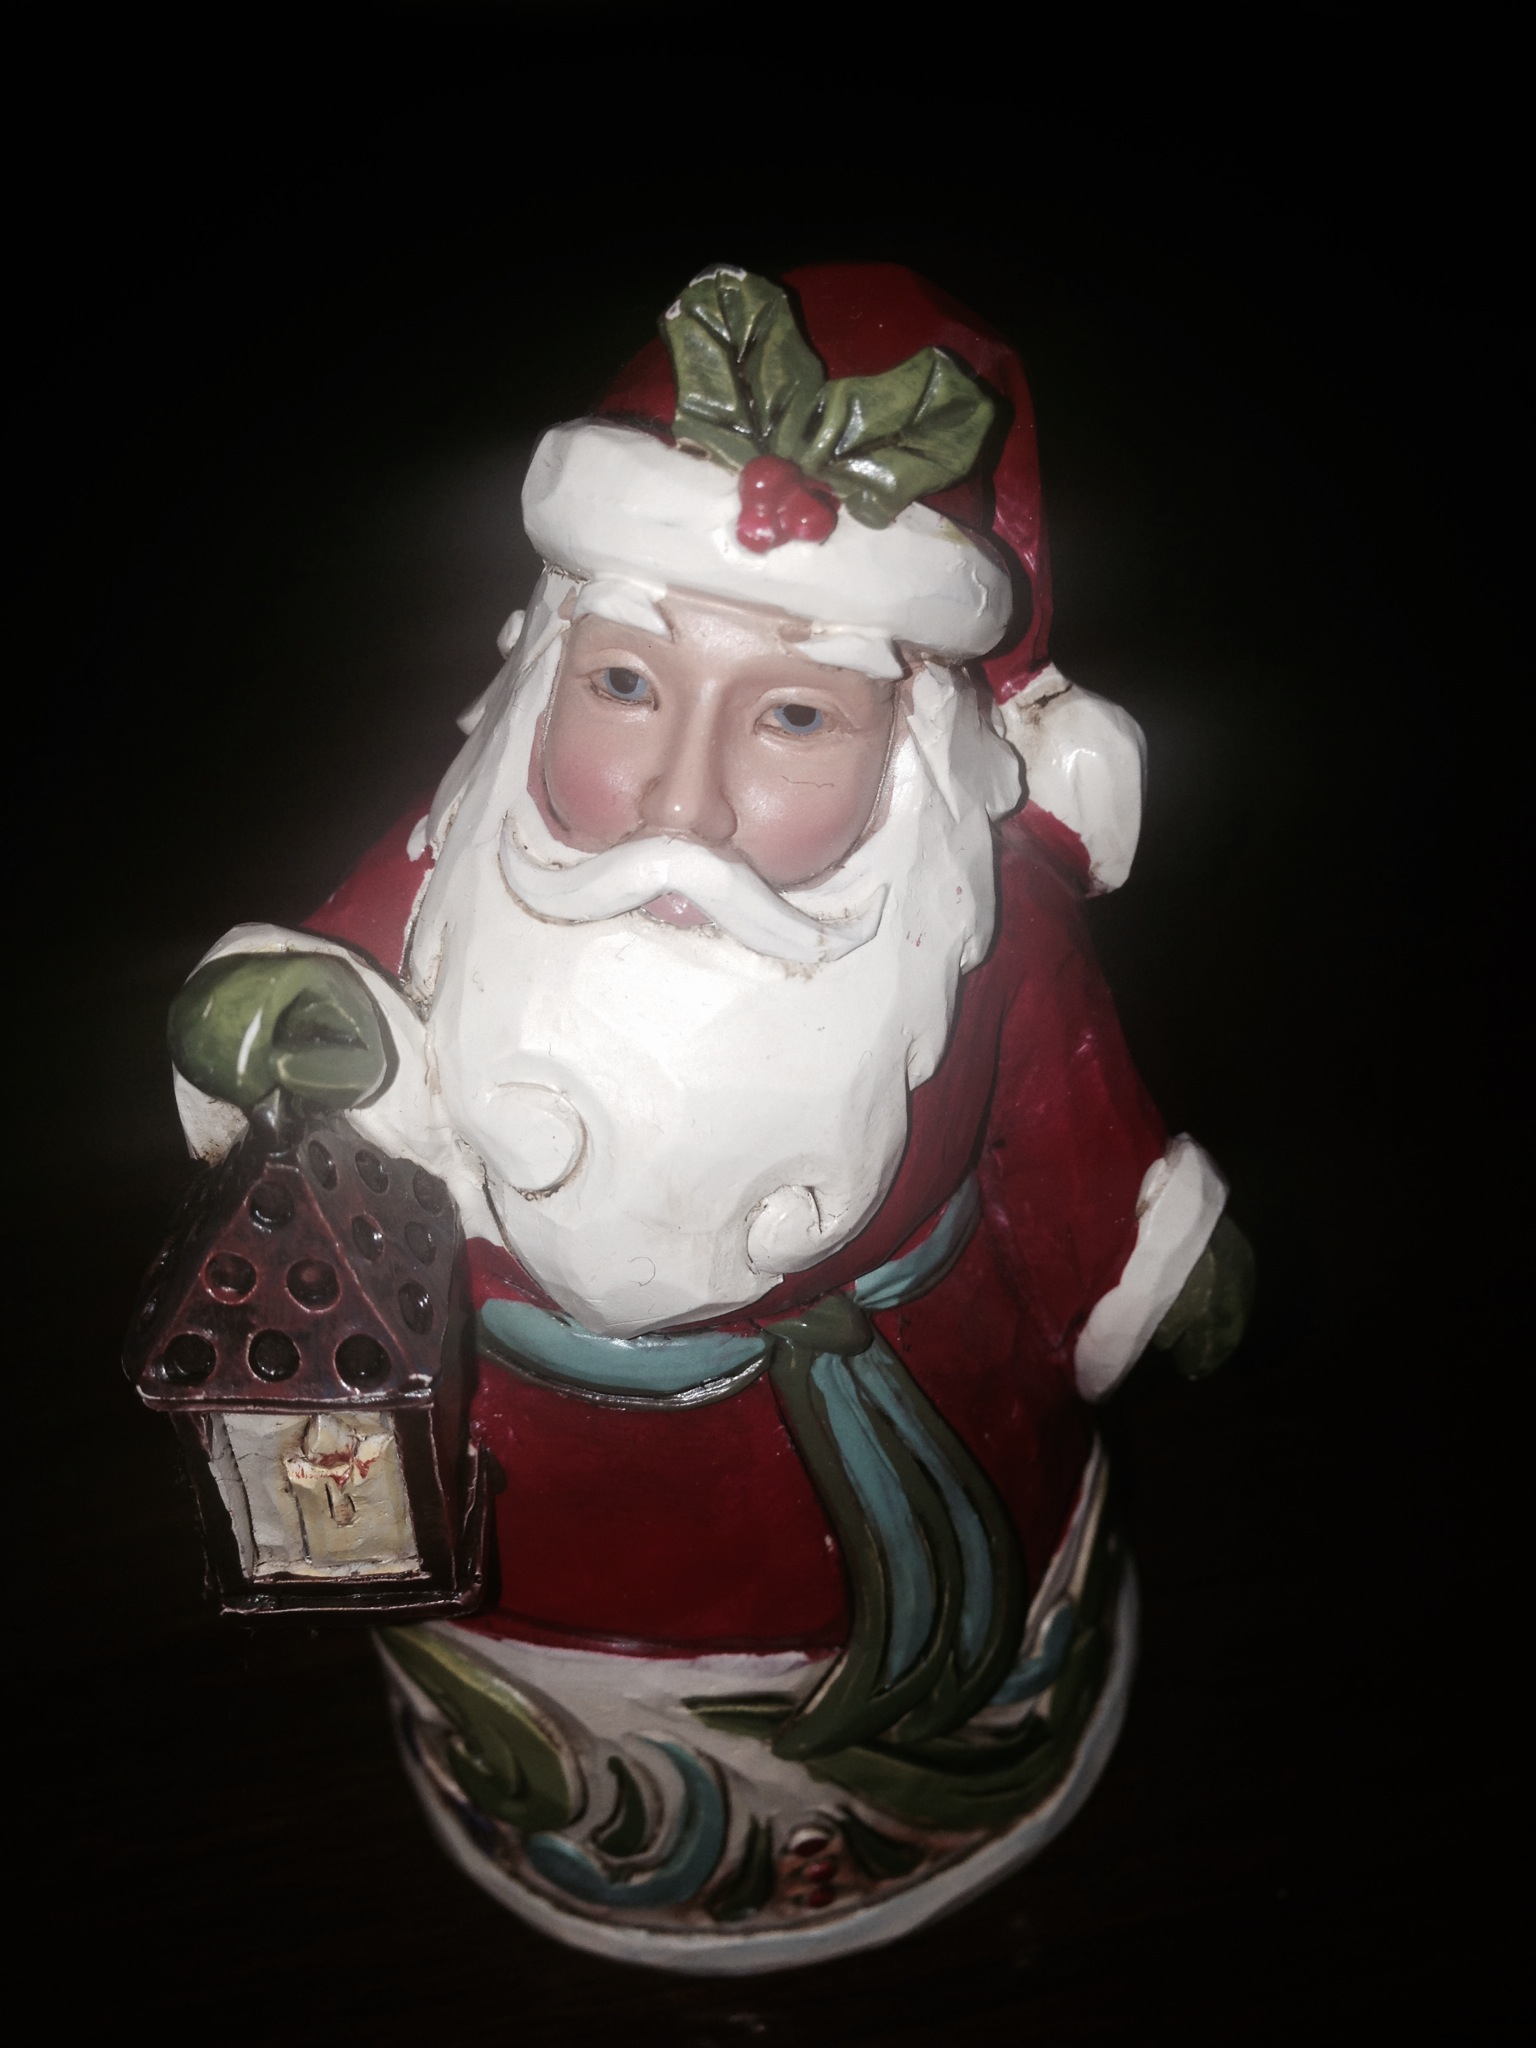 Thank you Lynda from New Jersey for this lovely Christmas decoration. It will remind me of my Secret Santa for many years to come. -- Eithne in Co Limerick, Ireland